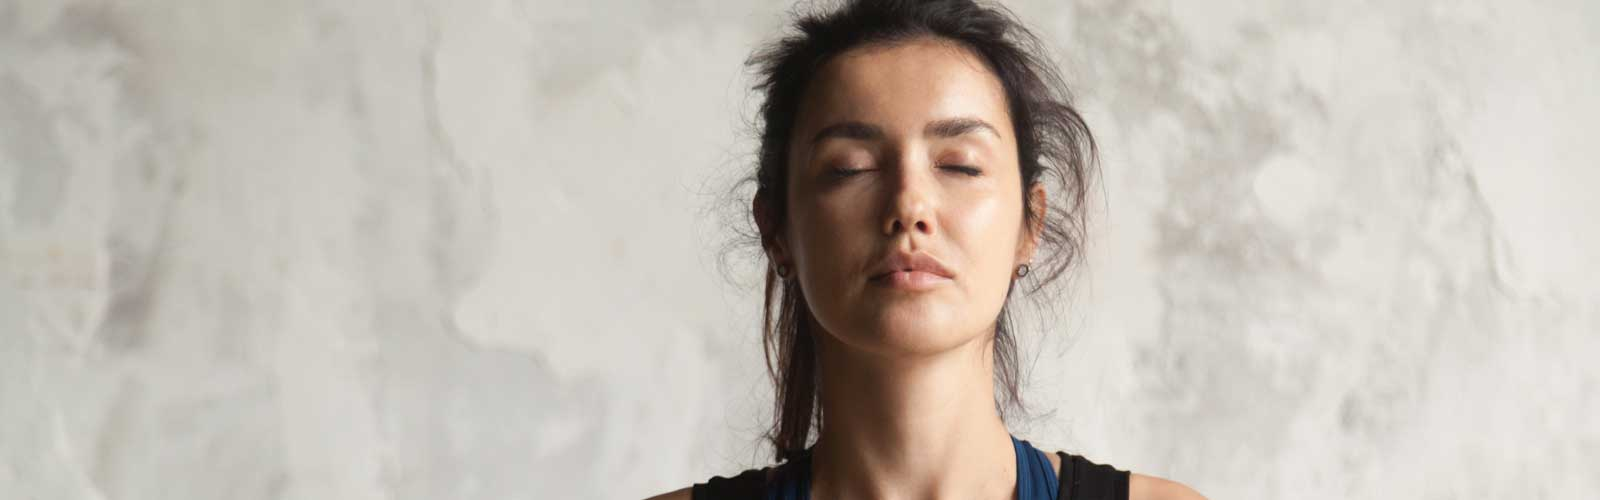 woman's face with closed eyes practicing yoga stock photo